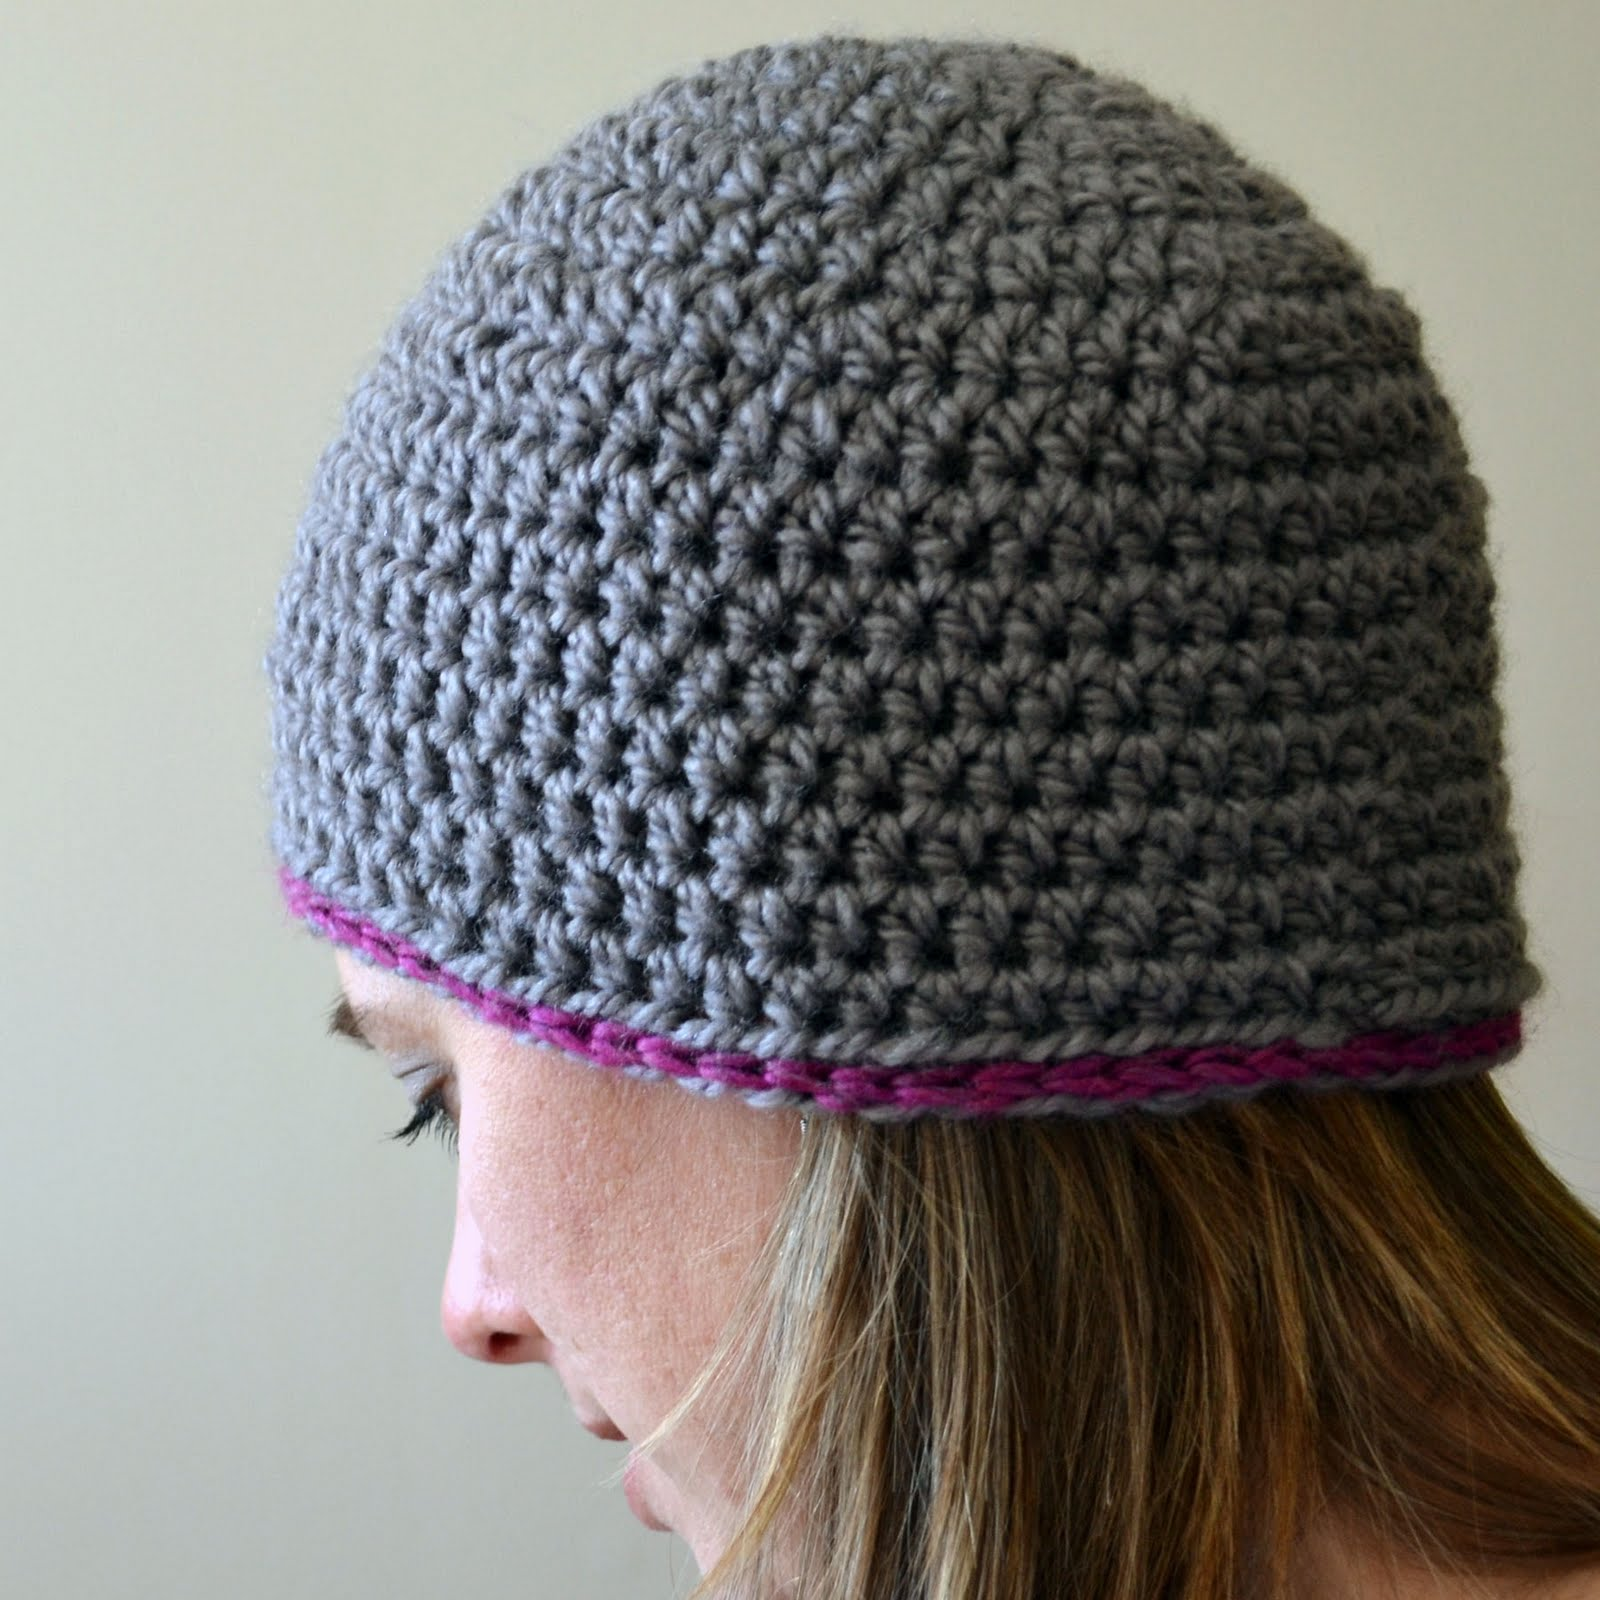 Crochet Hat Patterns Beanie : Crochet in Color: Chunky Beanie Pattern